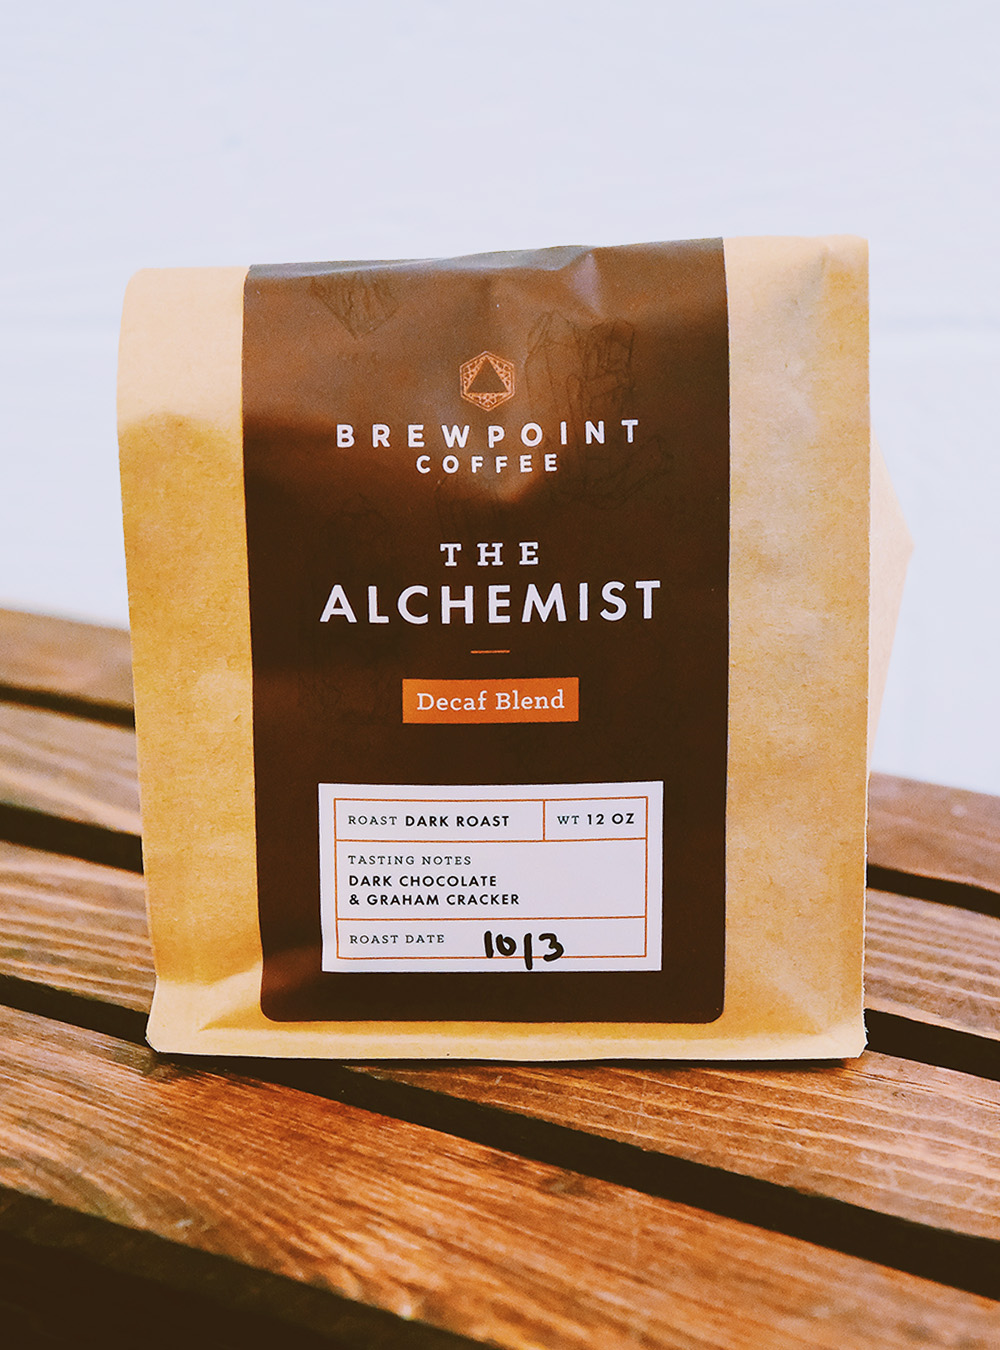 Packaging design for Brewpoint Coffee's decaf blend –The Alchemist.